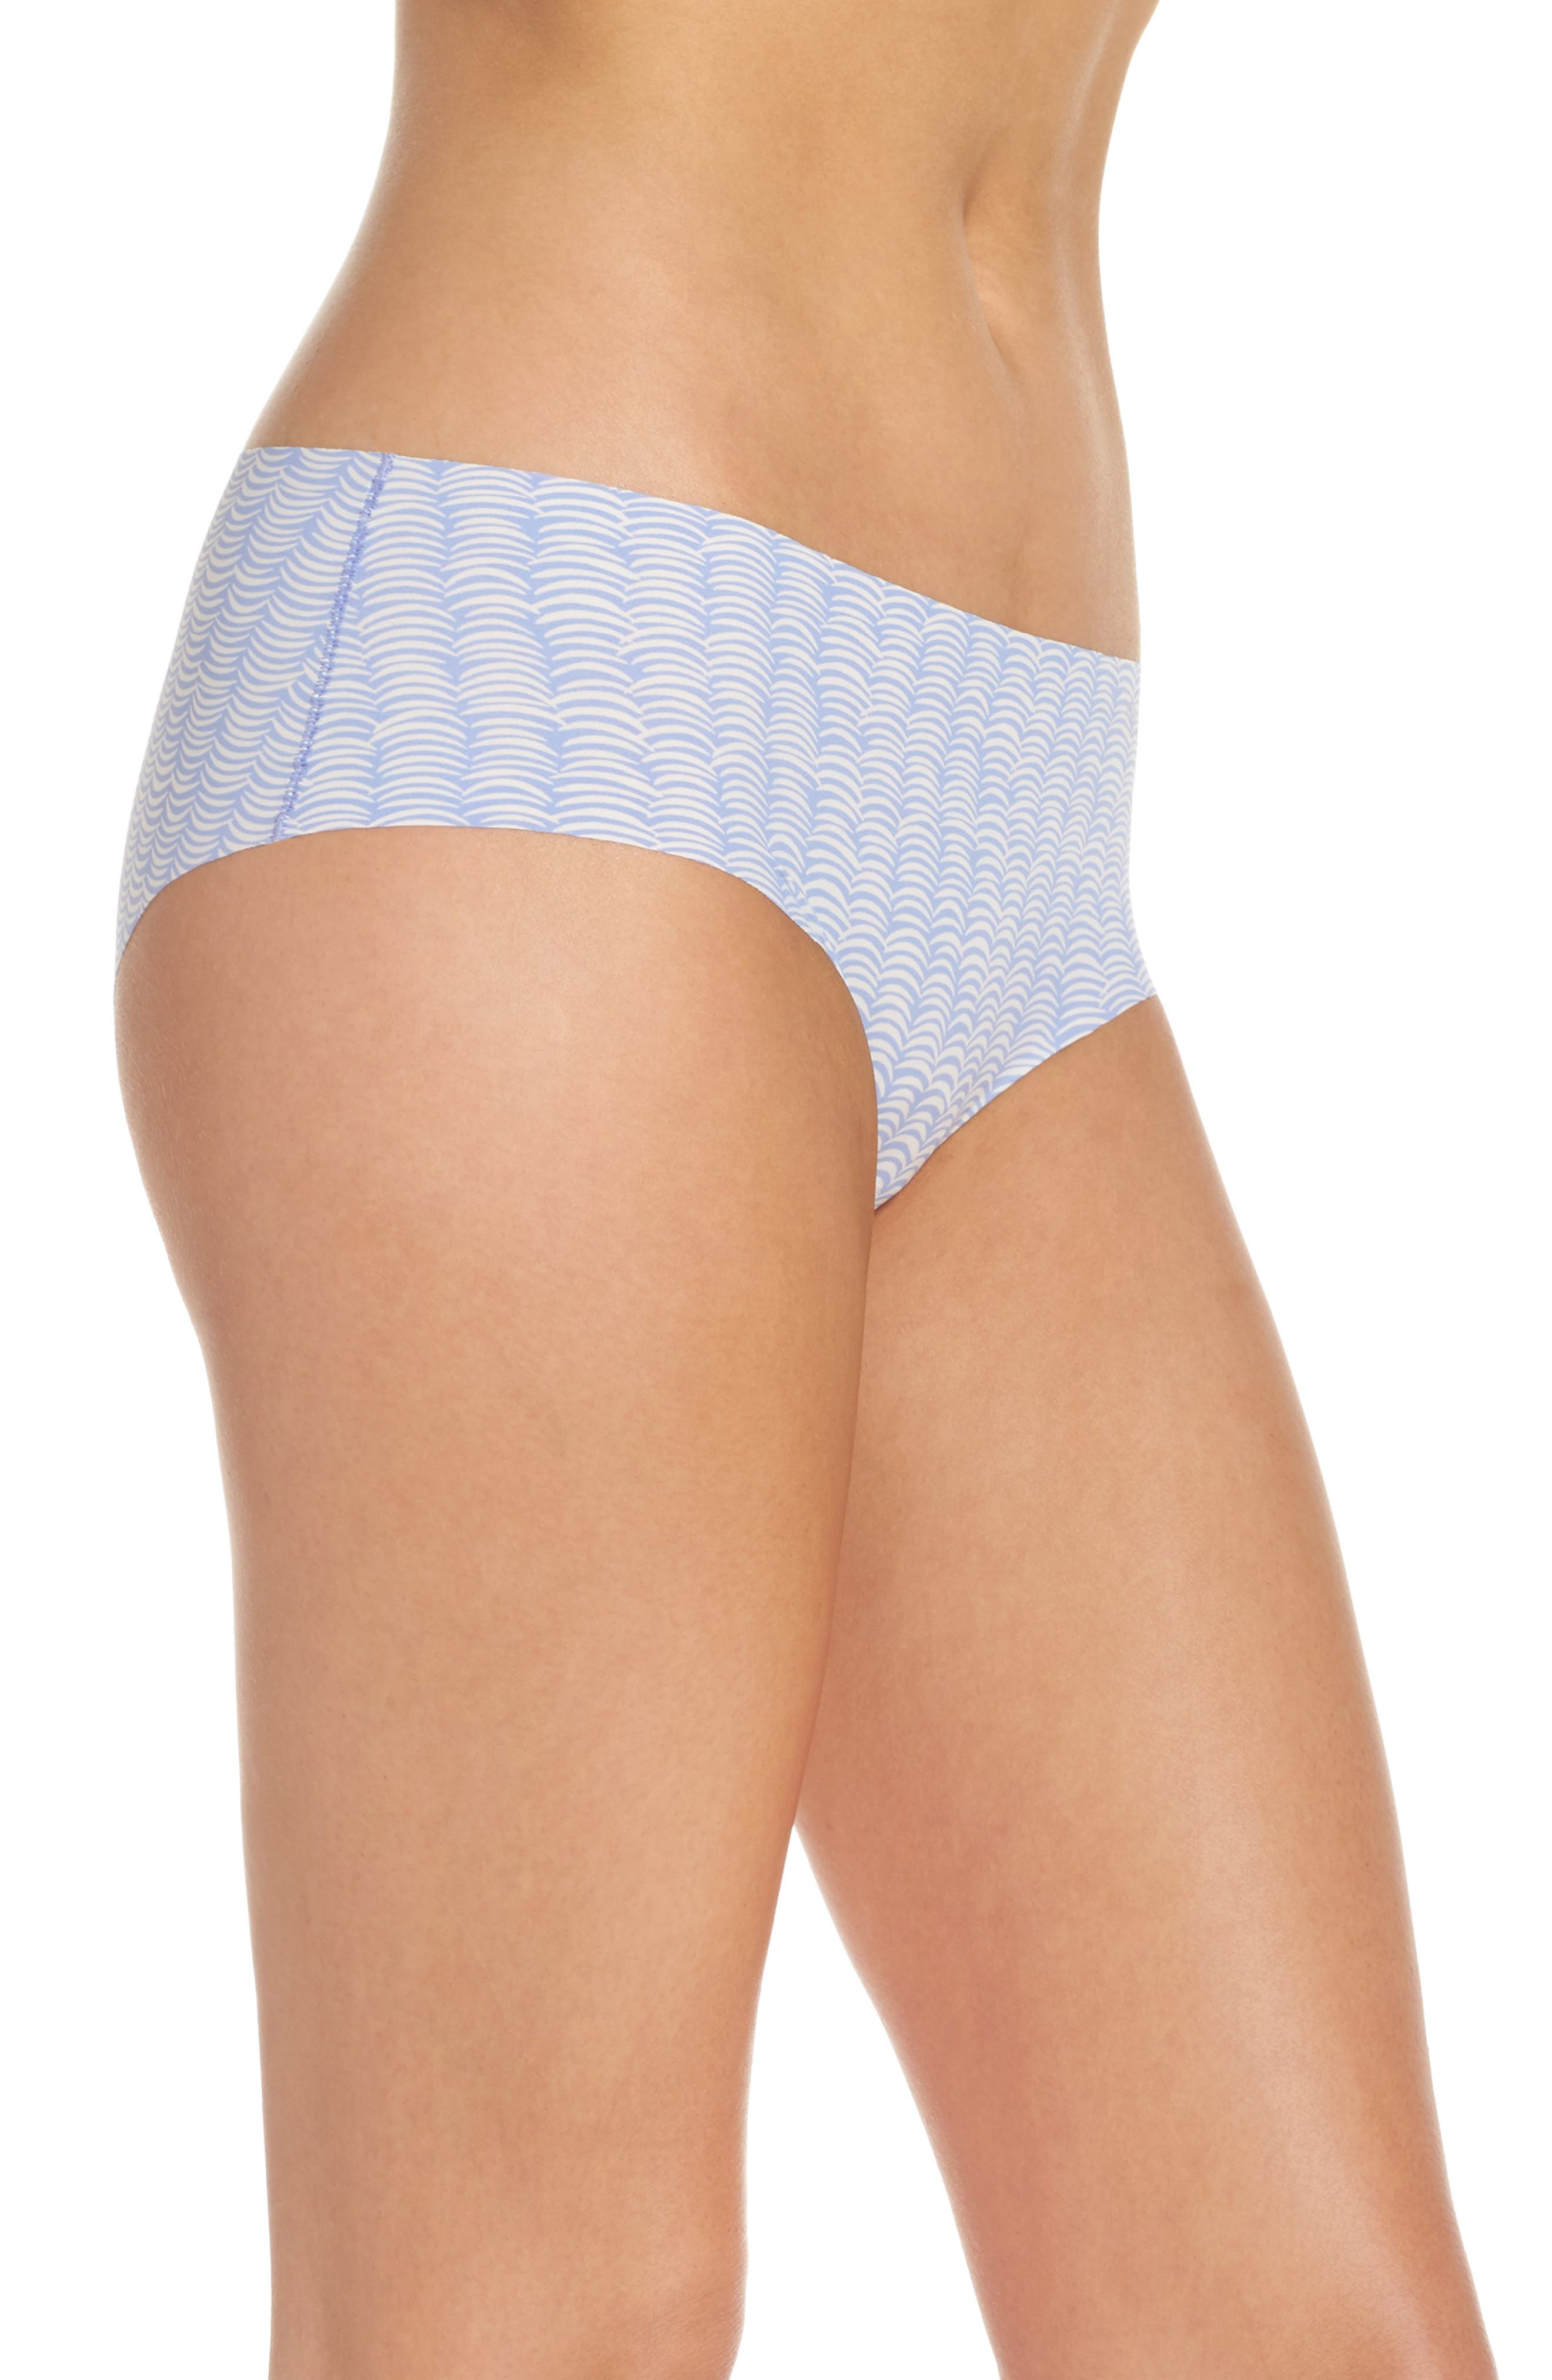 Alternate Image 3  - Calvin Klein Invisibles Hipster Briefs (3 for $33)